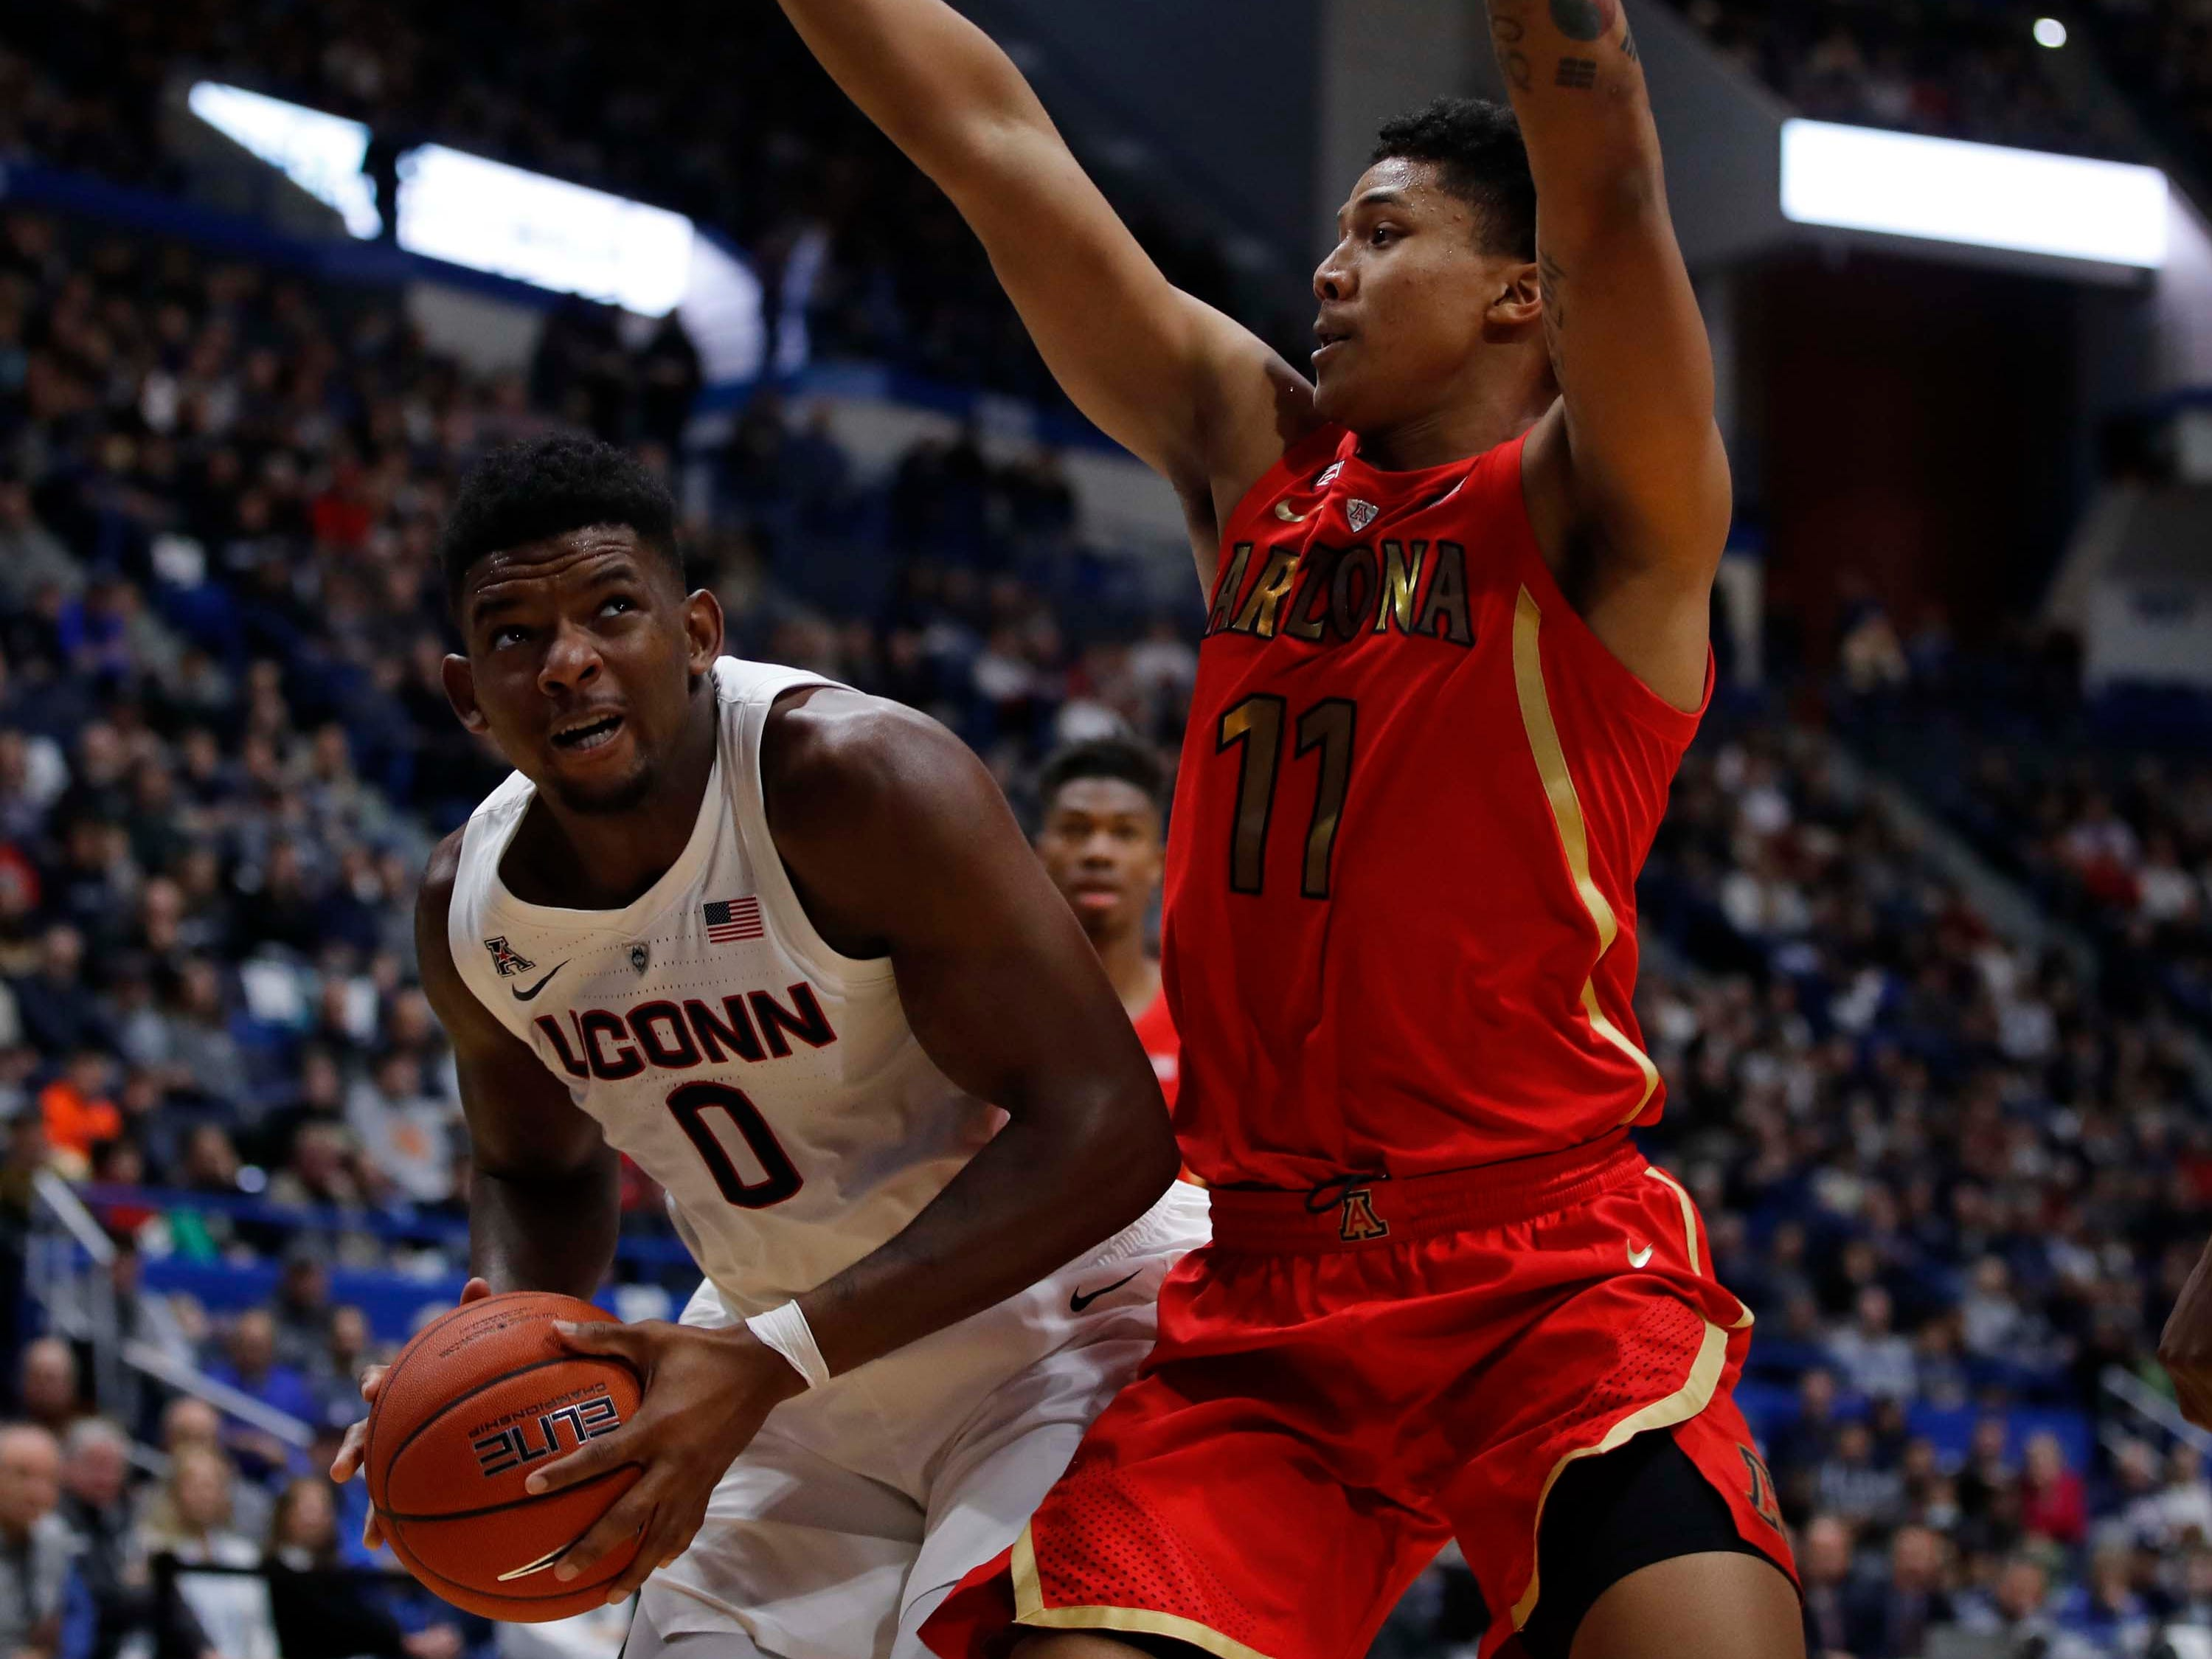 Dec 2, 2018: Connecticut Huskies forward Eric Cobb (0) looks to shoot against Arizona Wildcats forward Ira Lee (11) in the first half at XL Center.